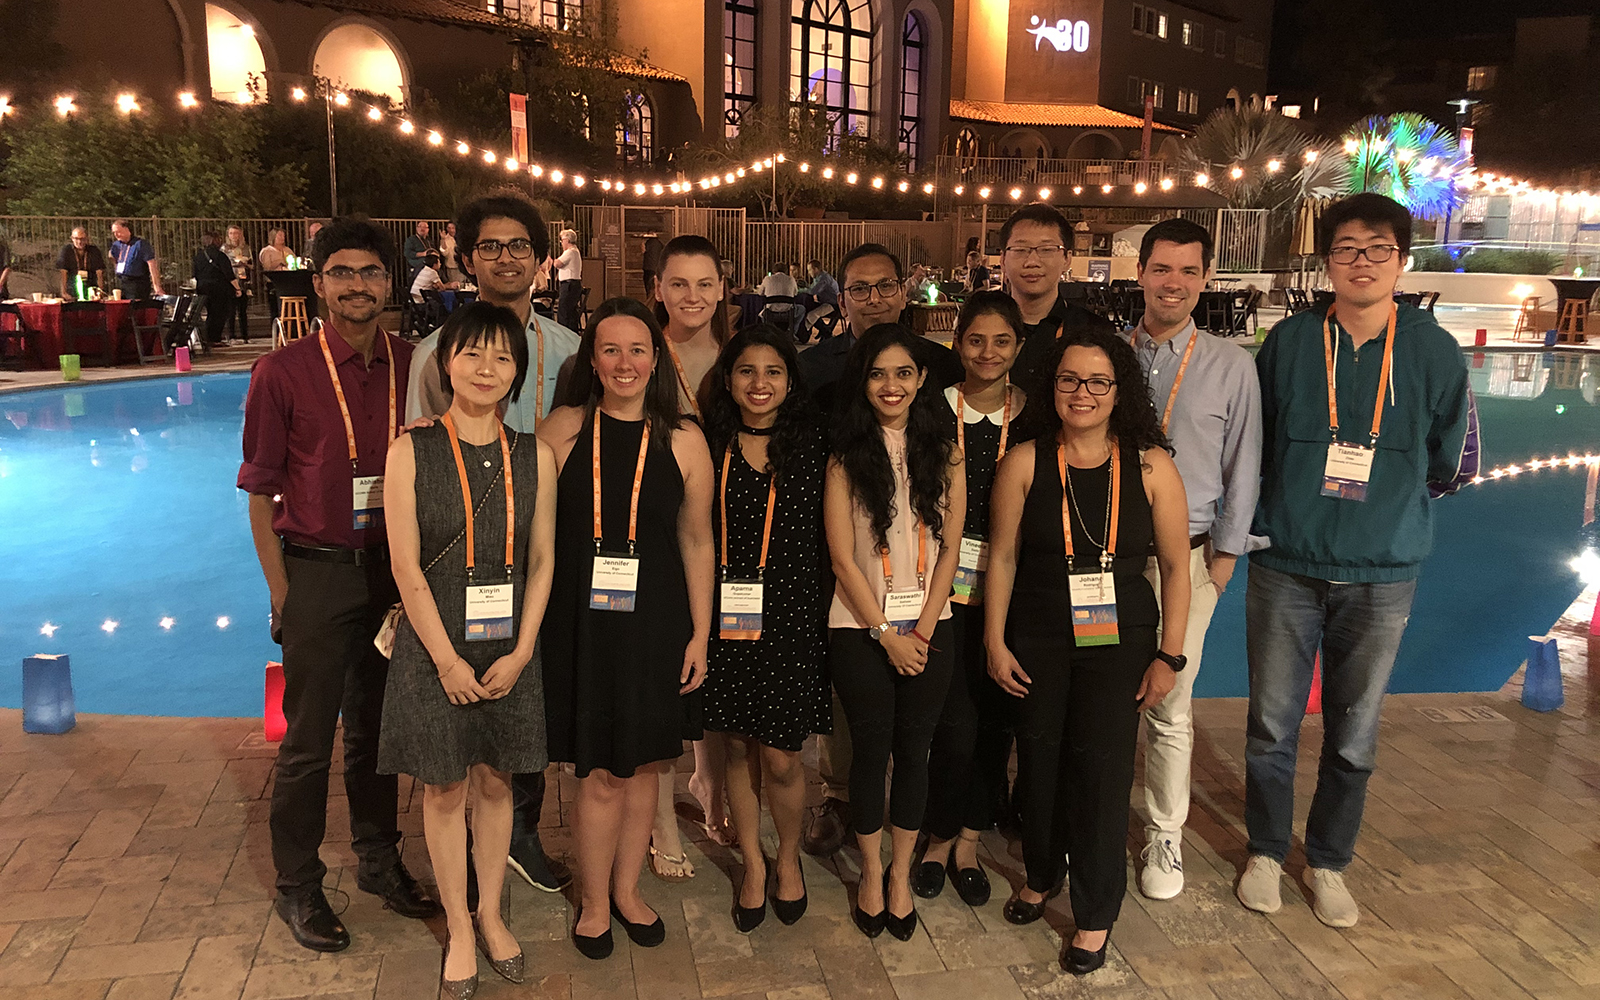 The UConn delegates pose at a reception during the JMP Discovery Summit in Tuscon, AZ. The two UConn teams represented here tied for first place in the contest. (Contributed Photo)